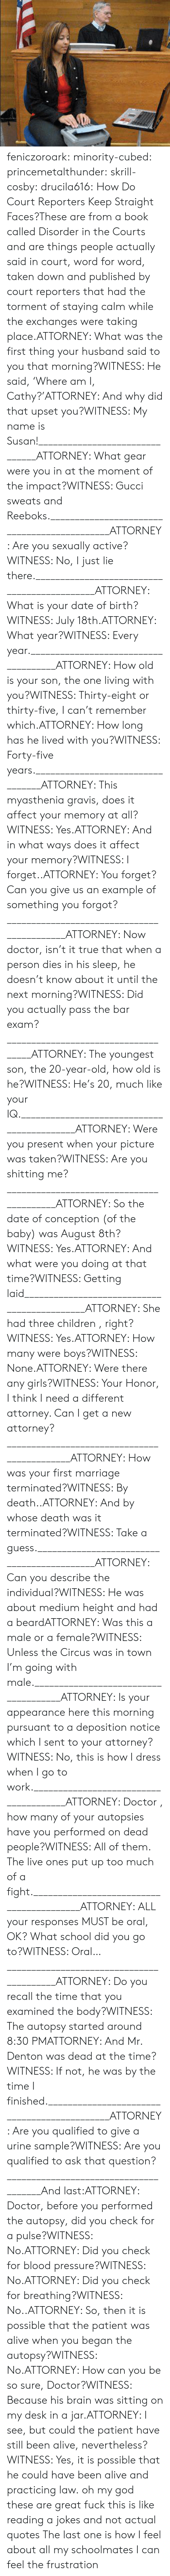 fuck this: feniczoroark:  minority-cubed:  princemetalthunder:  skrill-cosby:  drucila616:  How Do Court Reporters Keep Straight Faces?These are from a book called Disorder in the Courts and are things people actually said in court, word for word, taken down and published by court reporters that had the torment of staying calm while the exchanges were taking place.ATTORNEY: What was the first thing your husband said to you that morning?WITNESS: He said, 'Where am I, Cathy?'ATTORNEY: And why did that upset you?WITNESS: My name is Susan!_______________________________ATTORNEY: What gear were you in at the moment of the impact?WITNESS: Gucci sweats and Reeboks.____________________________________________ATTORNEY: Are you sexually active?WITNESS: No, I just lie there.____________________________________________ATTORNEY: What is your date of birth?WITNESS: July 18th.ATTORNEY: What year?WITNESS: Every year._____________________________________ATTORNEY: How old is your son, the one living with you?WITNESS: Thirty-eight or thirty-five, I can't remember which.ATTORNEY: How long has he lived with you?WITNESS: Forty-five years._________________________________ATTORNEY: This myasthenia gravis, does it affect your memory at all?WITNESS: Yes.ATTORNEY: And in what ways does it affect your memory?WITNESS: I forget..ATTORNEY: You forget? Can you give us an example of something you forgot?___________________________________________ATTORNEY: Now doctor, isn't it true that when a person dies in his sleep, he doesn't know about it until the next morning?WITNESS: Did you actually pass the bar exam?____________________________________ATTORNEY: The youngest son, the 20-year-old, how old is he?WITNESS: He's 20, much like your IQ.___________________________________________ATTORNEY: Were you present when your picture was taken?WITNESS: Are you shitting me?_________________________________________ATTORNEY: So the date of conception (of the baby) was August 8th?WITNESS: Yes.ATTORNEY: And what were you doing at that time?WITNESS: Getting laid____________________________________________ATTORNEY: She had three children , right?WITNESS: Yes.ATTORNEY: How many were boys?WITNESS: None.ATTORNEY: Were there any girls?WITNESS: Your Honor, I think I need a different attorney. Can I get a new attorney?____________________________________________ATTORNEY: How was your first marriage terminated?WITNESS: By death..ATTORNEY: And by whose death was it terminated?WITNESS: Take a guess.___________________________________________ATTORNEY: Can you describe the individual?WITNESS: He was about medium height and had a beardATTORNEY: Was this a male or a female?WITNESS: Unless the Circus was in town I'm going with male._____________________________________ATTORNEY: Is your appearance here this morning pursuant to a deposition notice which I sent to your attorney?WITNESS: No, this is how I dress when I go to work.______________________________________ATTORNEY: Doctor , how many of your autopsies have you performed on dead people?WITNESS: All of them. The live ones put up too much of a fight._________________________________________ATTORNEY: ALL your responses MUST be oral, OK? What school did you go to?WITNESS: Oral…_________________________________________ATTORNEY: Do you recall the time that you examined the body?WITNESS: The autopsy started around 8:30 PMATTORNEY: And Mr. Denton was dead at the time?WITNESS: If not, he was by the time I finished.____________________________________________ATTORNEY: Are you qualified to give a urine sample?WITNESS: Are you qualified to ask that question?______________________________________And last:ATTORNEY: Doctor, before you performed the autopsy, did you check for a pulse?WITNESS: No.ATTORNEY: Did you check for blood pressure?WITNESS: No.ATTORNEY: Did you check for breathing?WITNESS: No..ATTORNEY: So, then it is possible that the patient was alive when you began the autopsy?WITNESS: No.ATTORNEY: How can you be so sure, Doctor?WITNESS: Because his brain was sitting on my desk in a jar.ATTORNEY: I see, but could the patient have still been alive, nevertheless?WITNESS: Yes, it is possible that he could have been alive and practicing law.  oh my god these are great  fuck this is like reading a jokes and not actual quotes   The last one is how I feel about all my schoolmates  I can feel the frustration